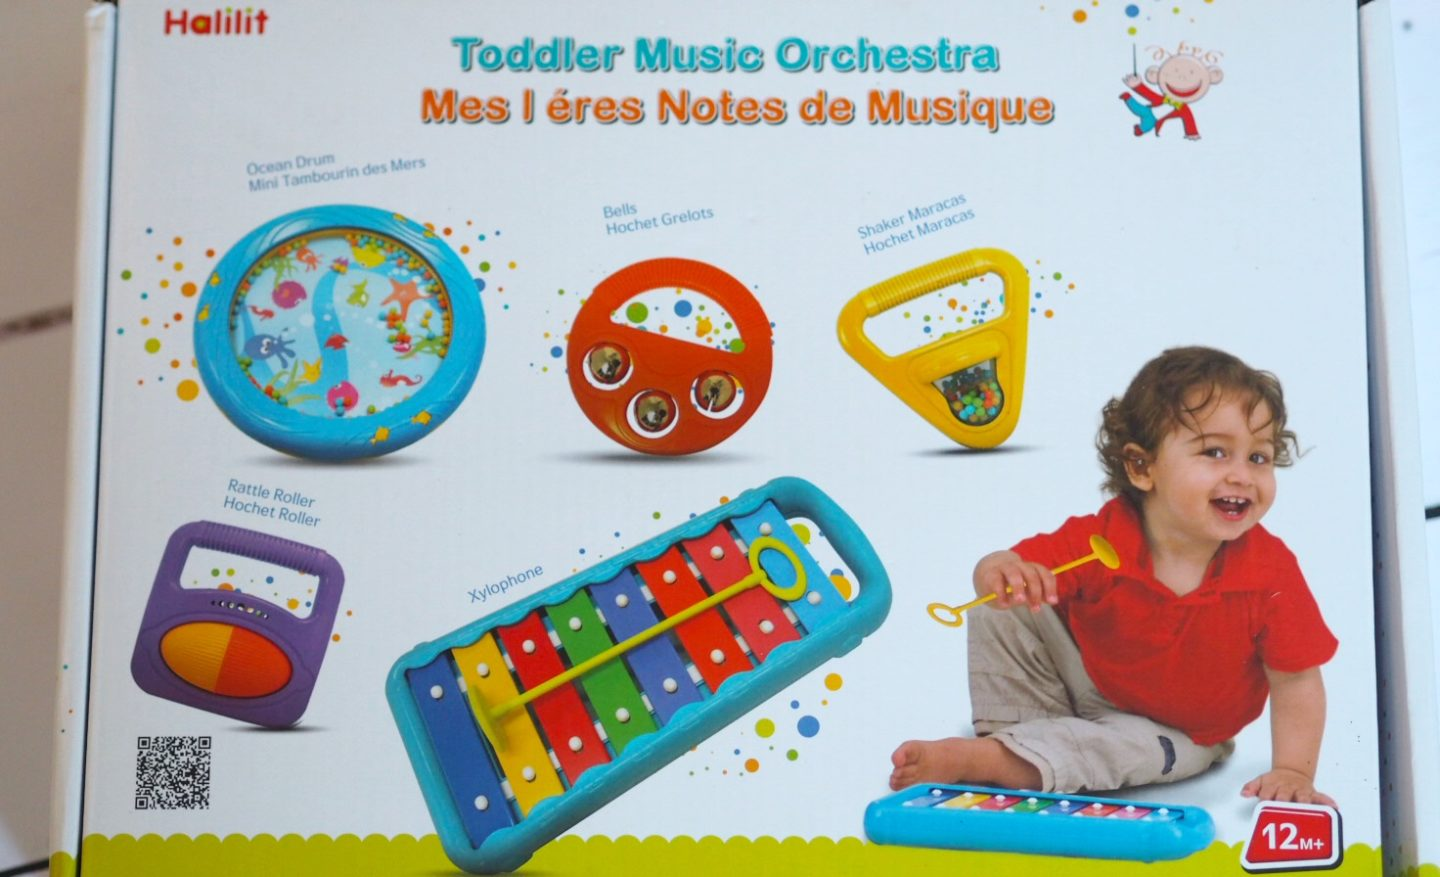 Halilit Toddler Music Orchestra Set | Playing with instruments helps with developing toddler's gross and motor skills. Check out my thoughts on the Halitat Toddler Music Orchestra Set Review.